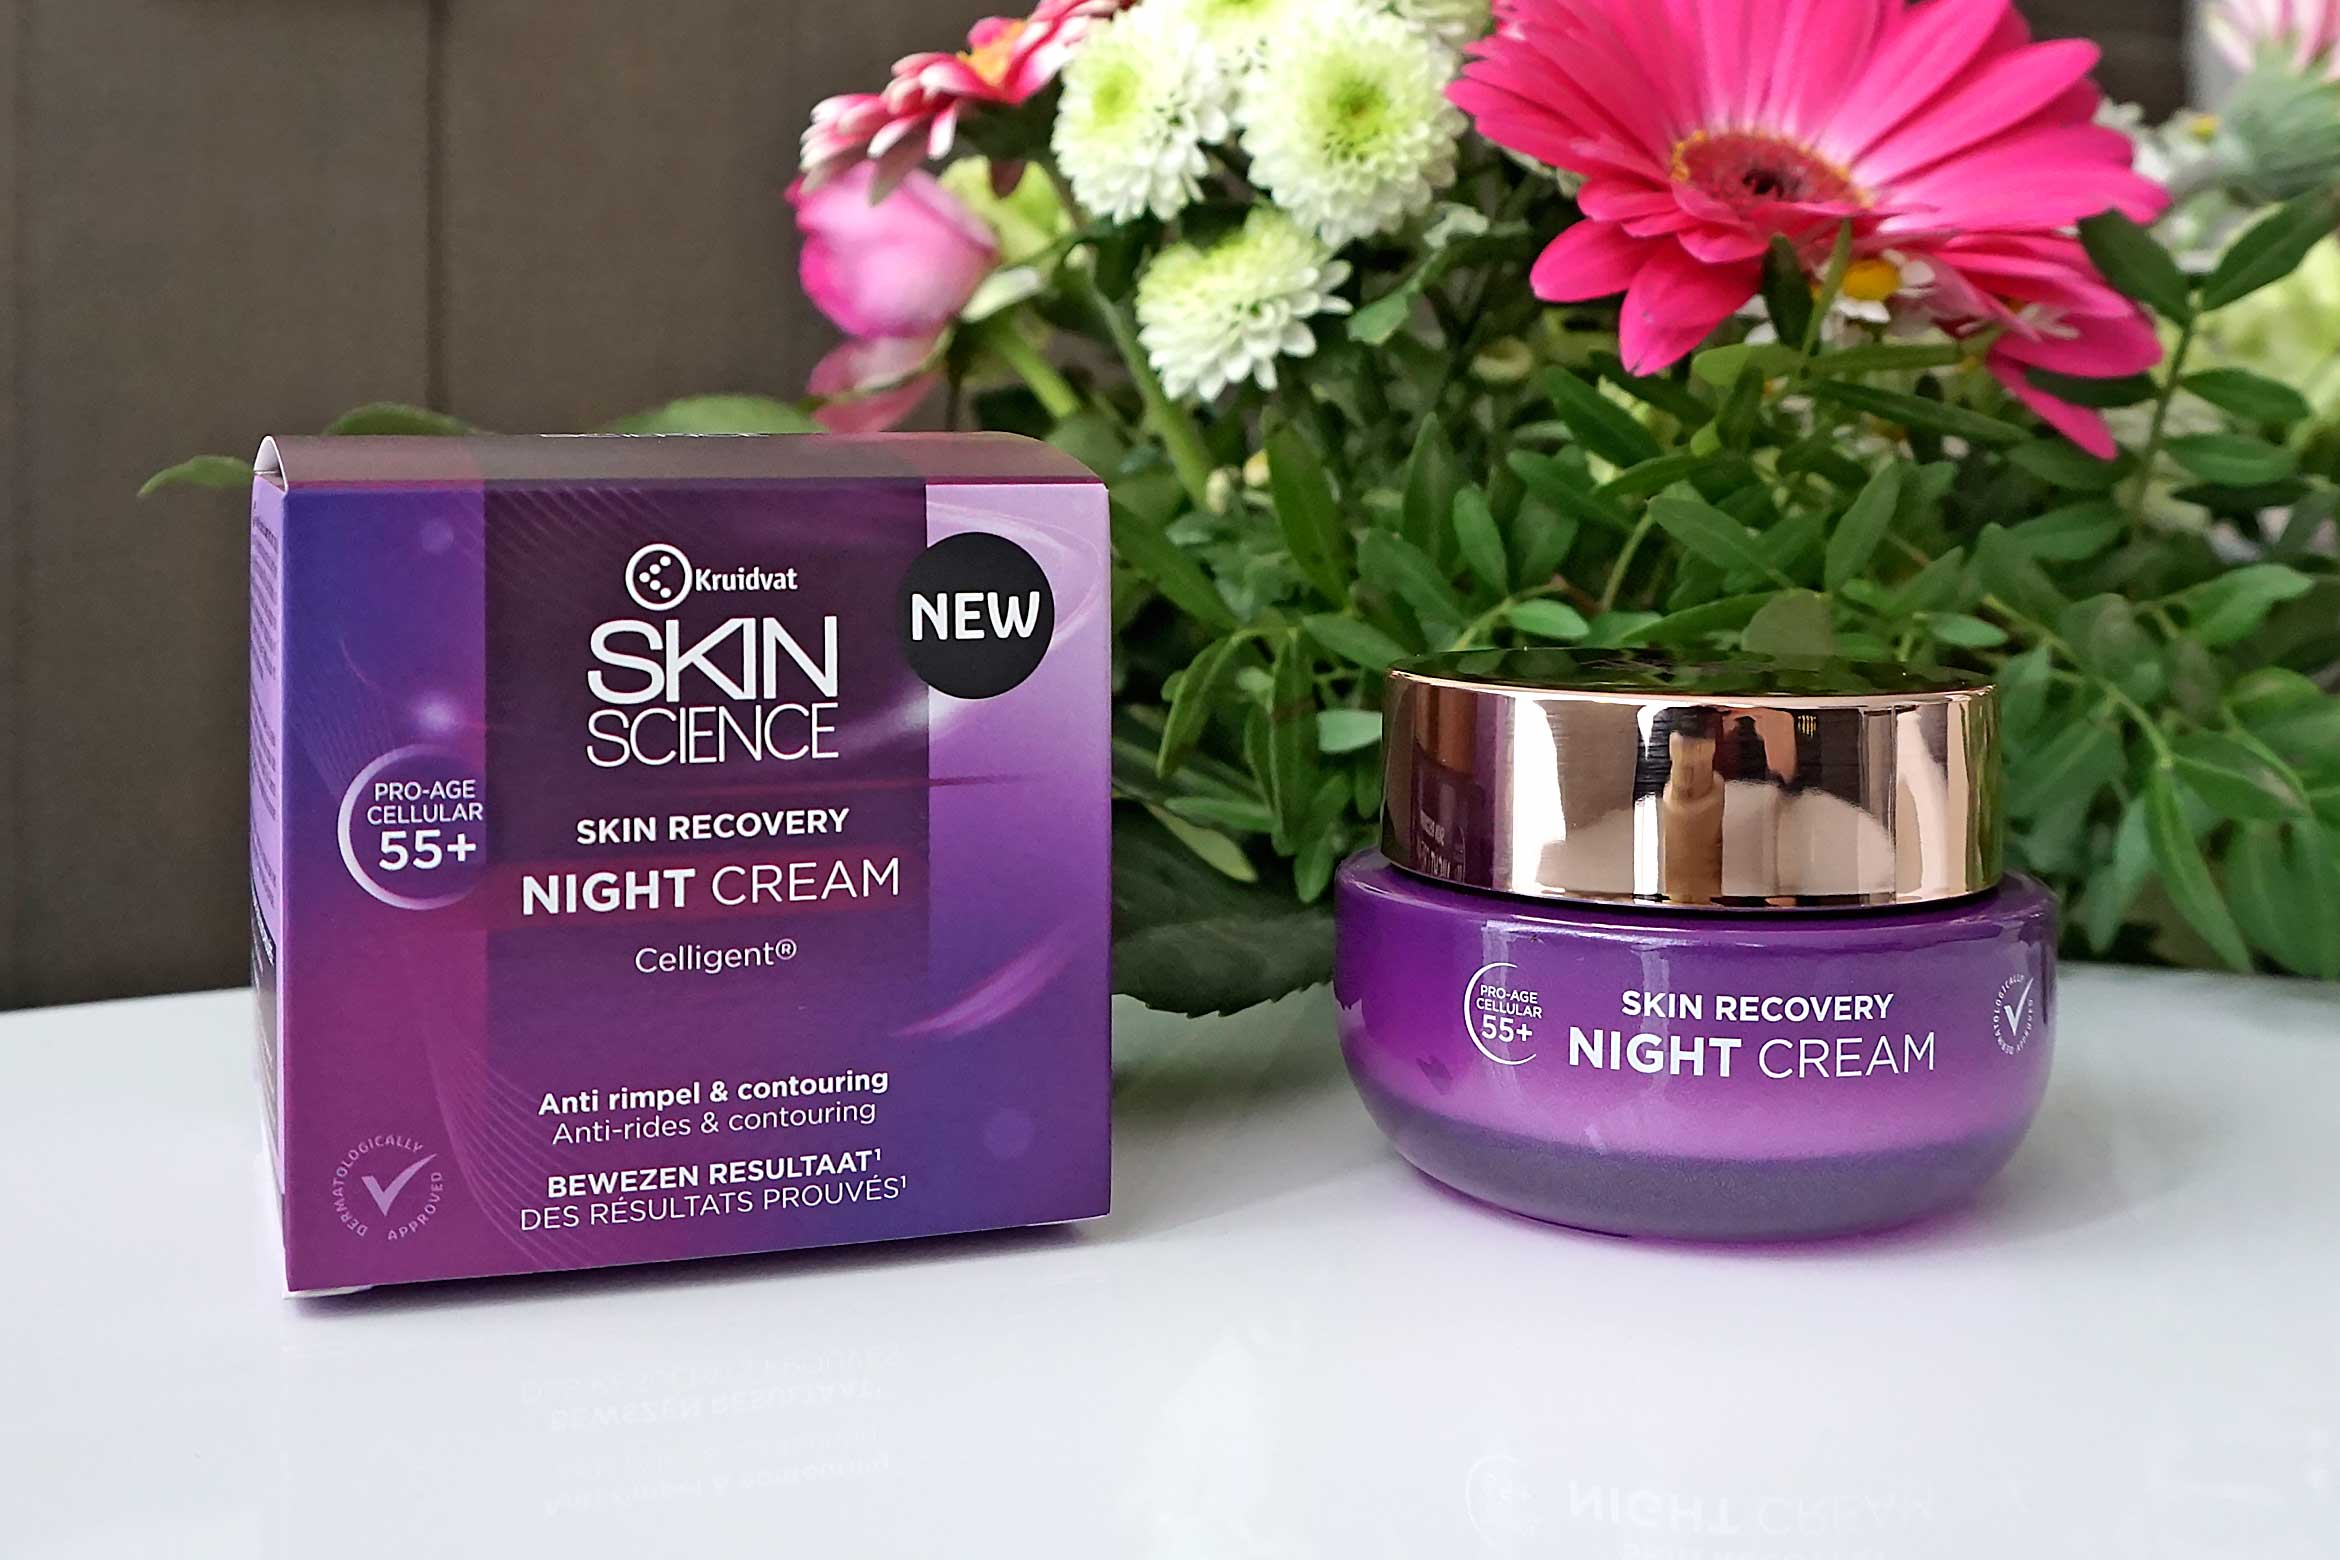 kruidvat skin science skin recovery 55+ night cream review